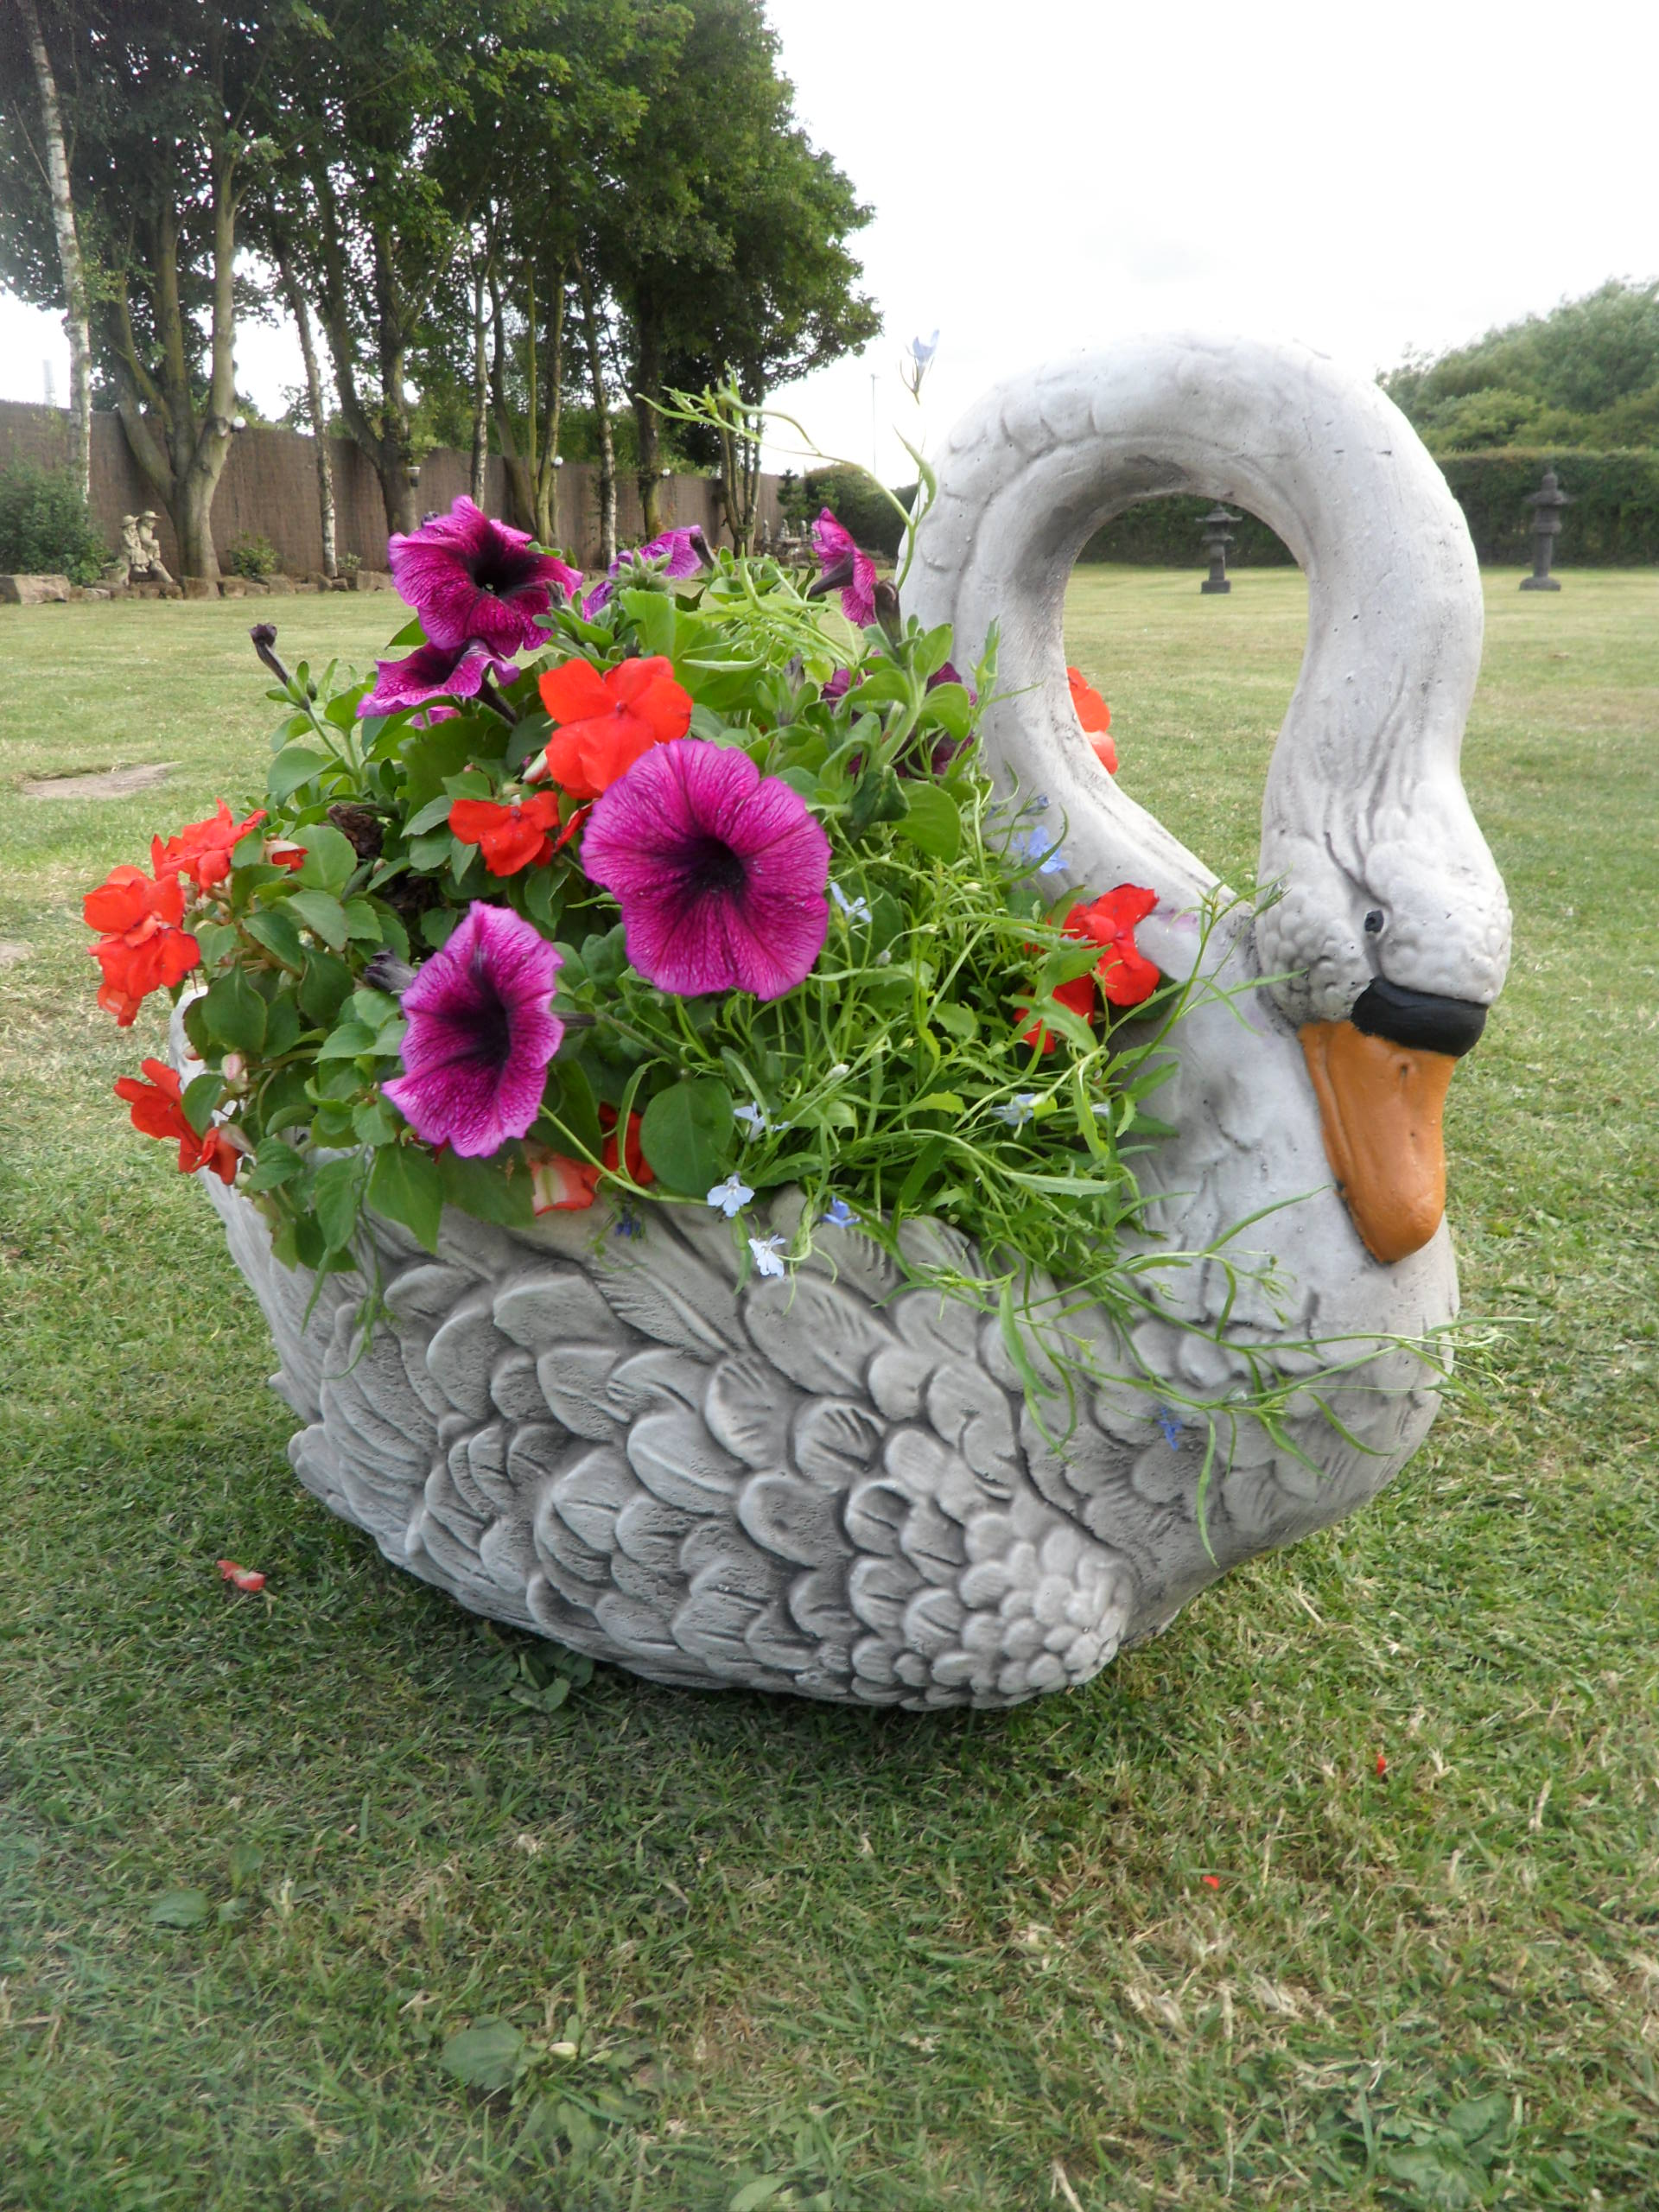 Garden Ornaments 18 Decorative Garden Ornament Examples ...